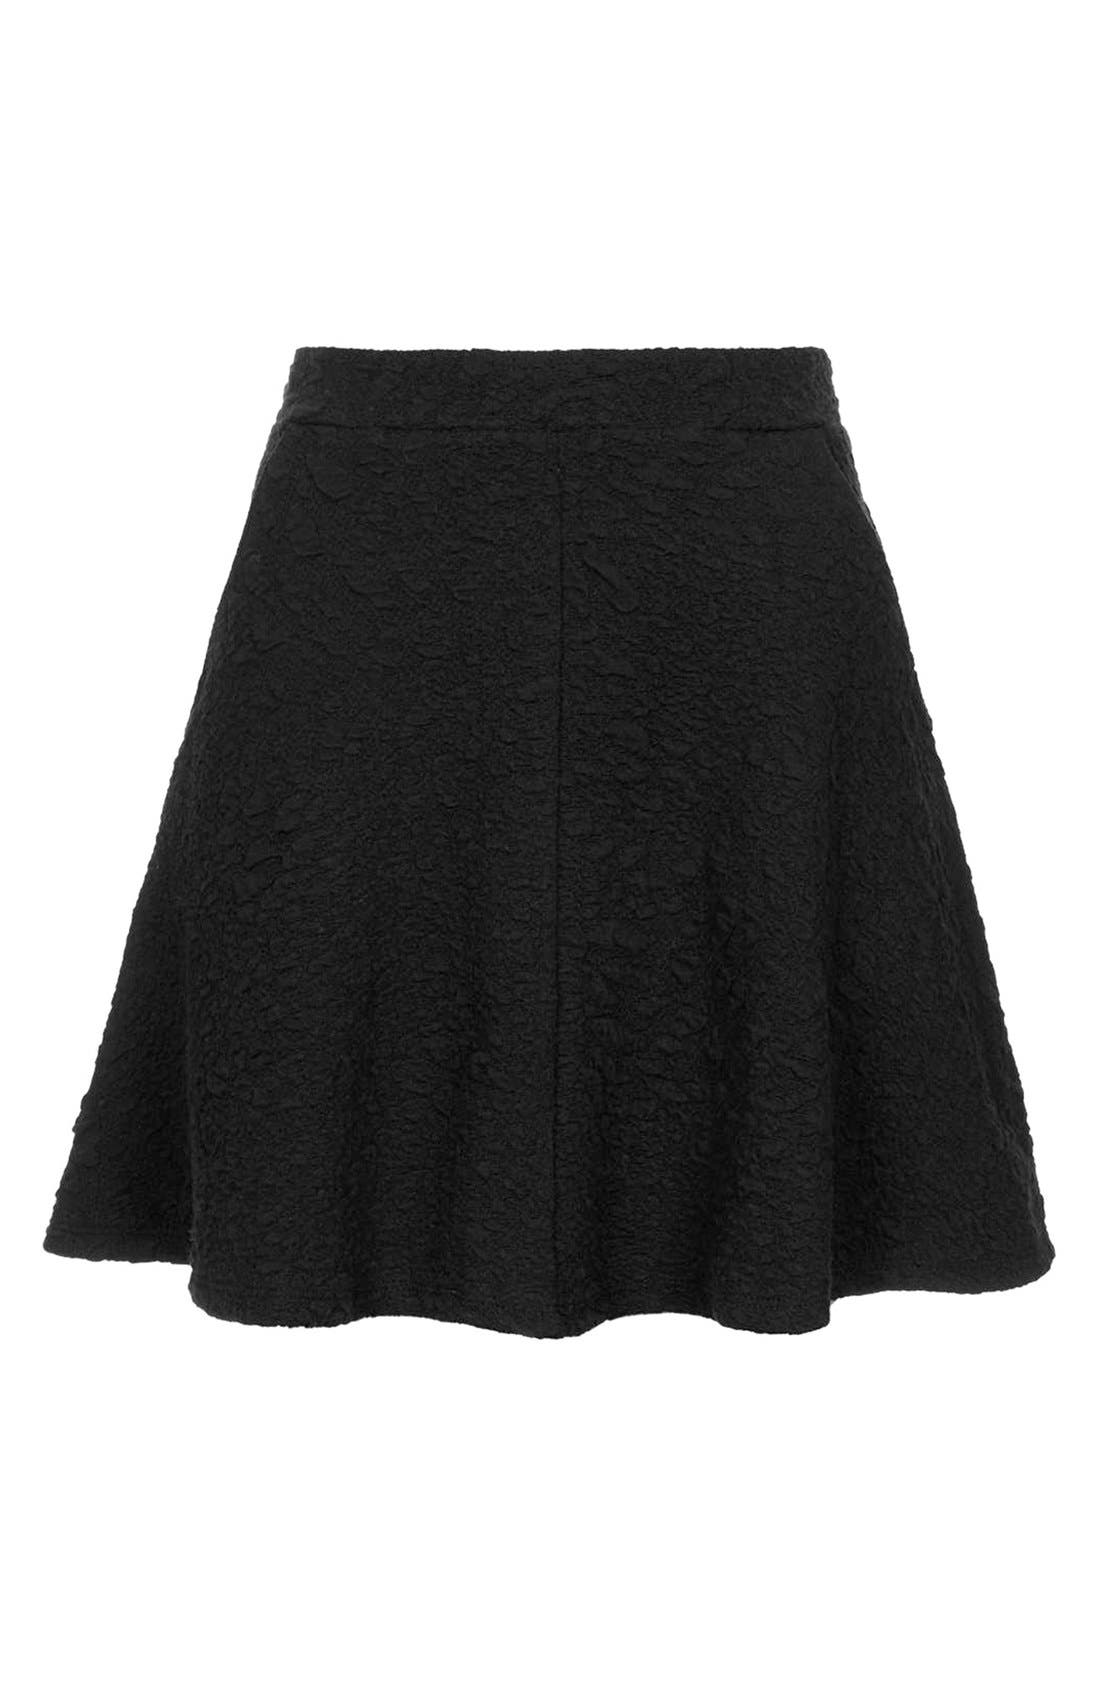 Alternate Image 3  - Topshop Jacquard Skater Skirt